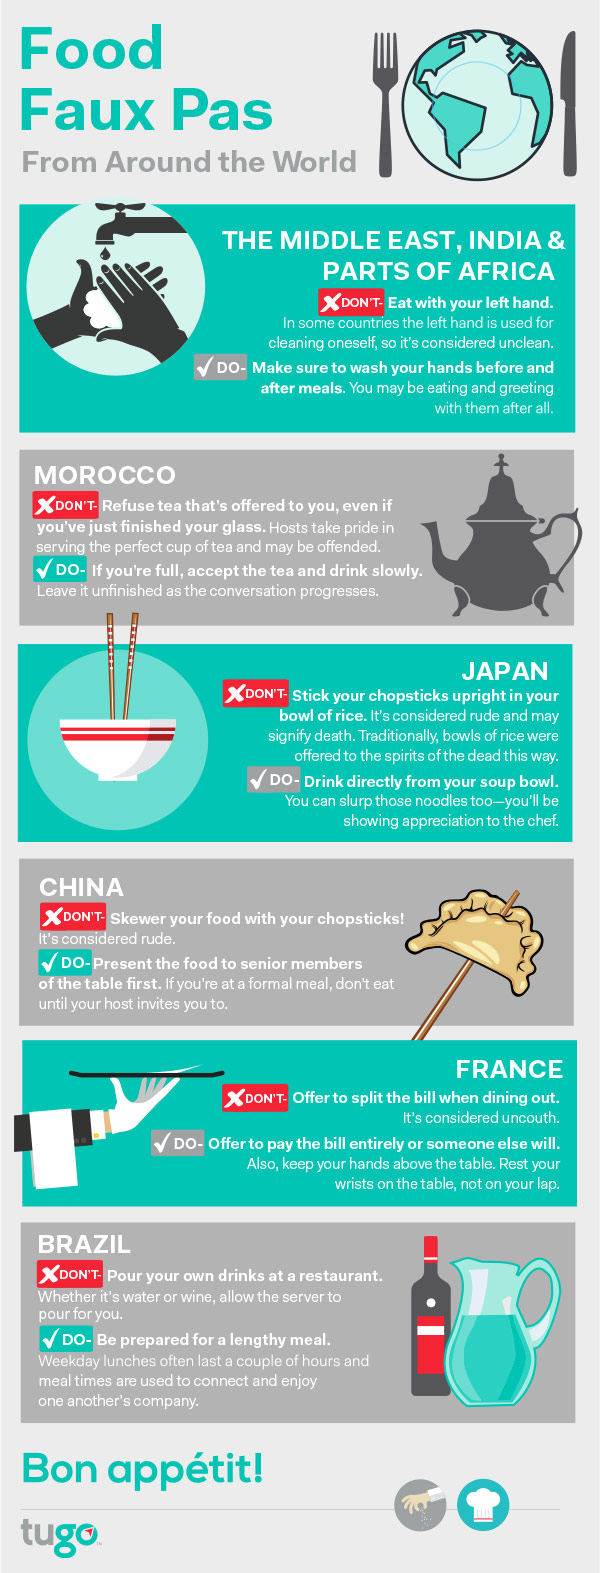 This infographic explores food faux pas or mistakes travellers can make when eating in foreign countries such as China, Morocco, Japan, Brazil and France.